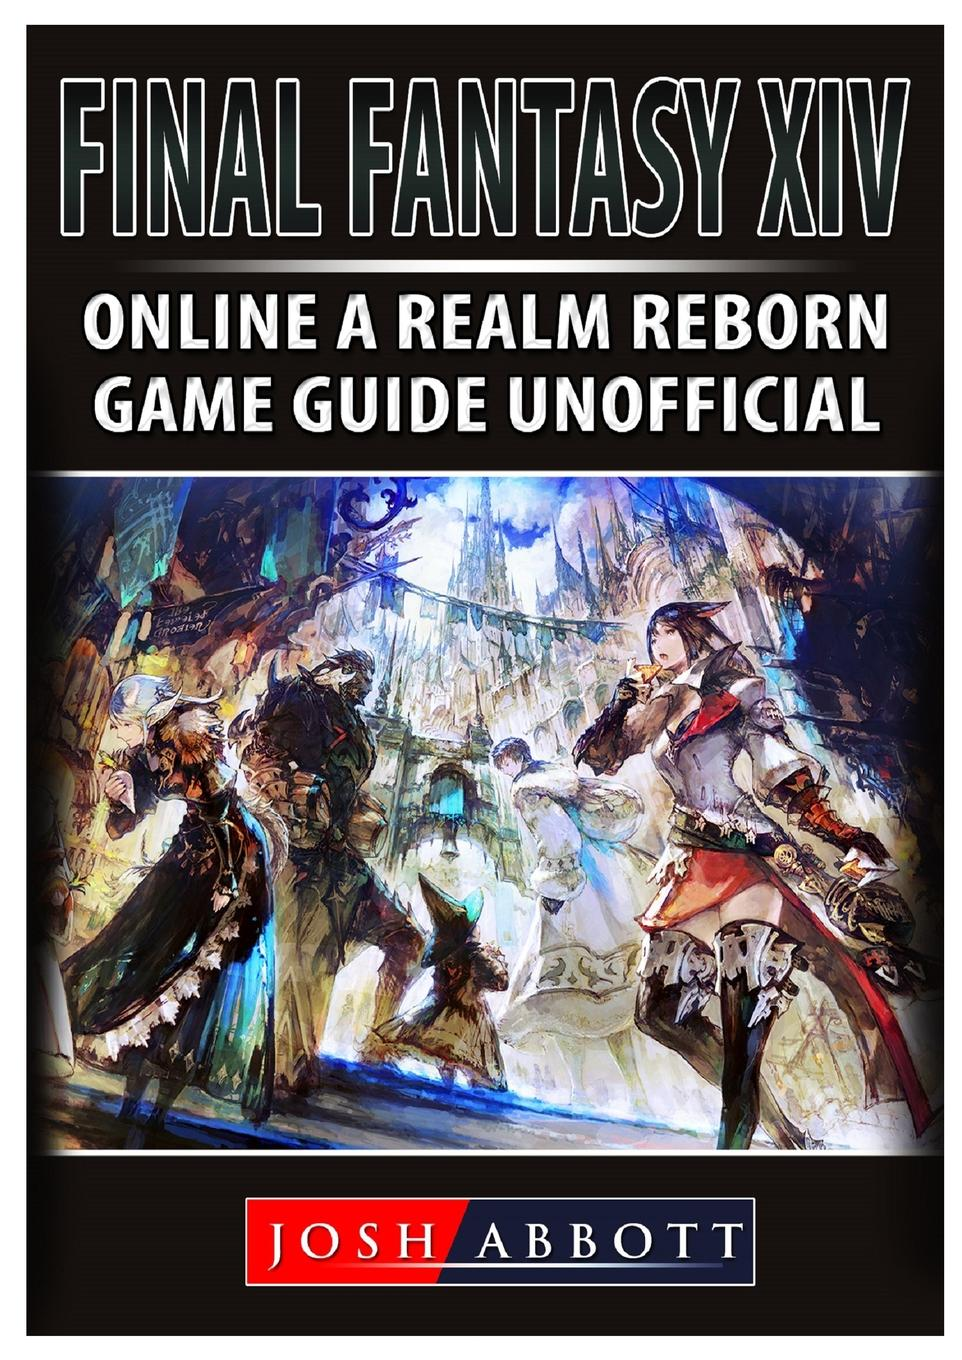 Final Fantasy XIV Online a Realm Reborn Game Guide Unofficial